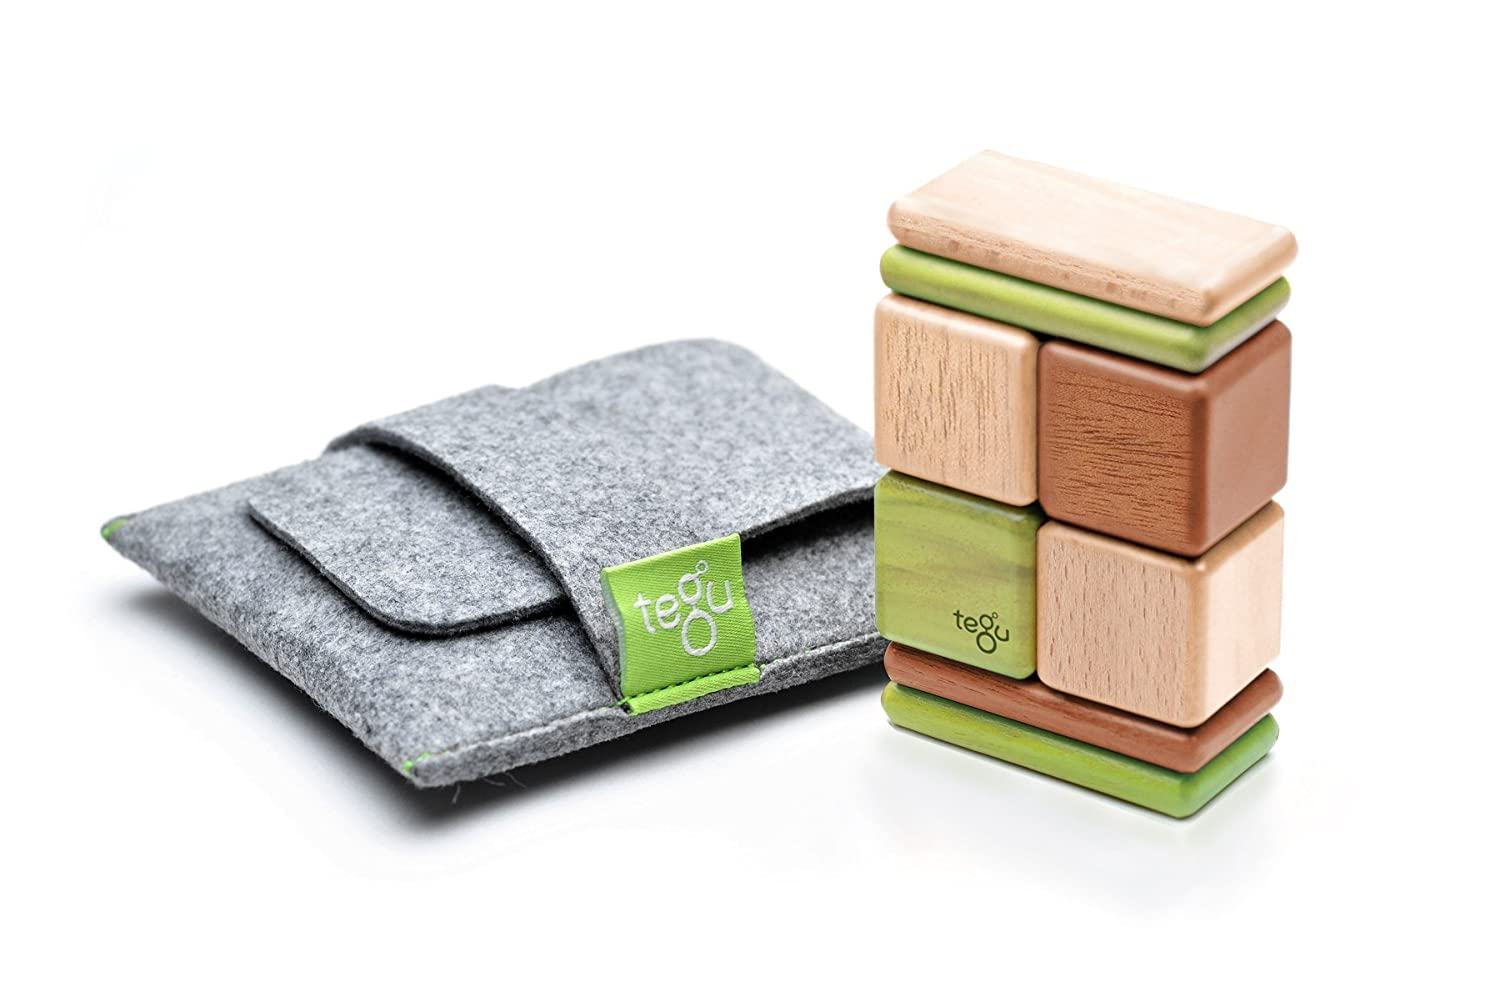 8 Piece Tegu Pocket Pouch Magnetic Wooden Block Set, Natural A-10-011-SJG